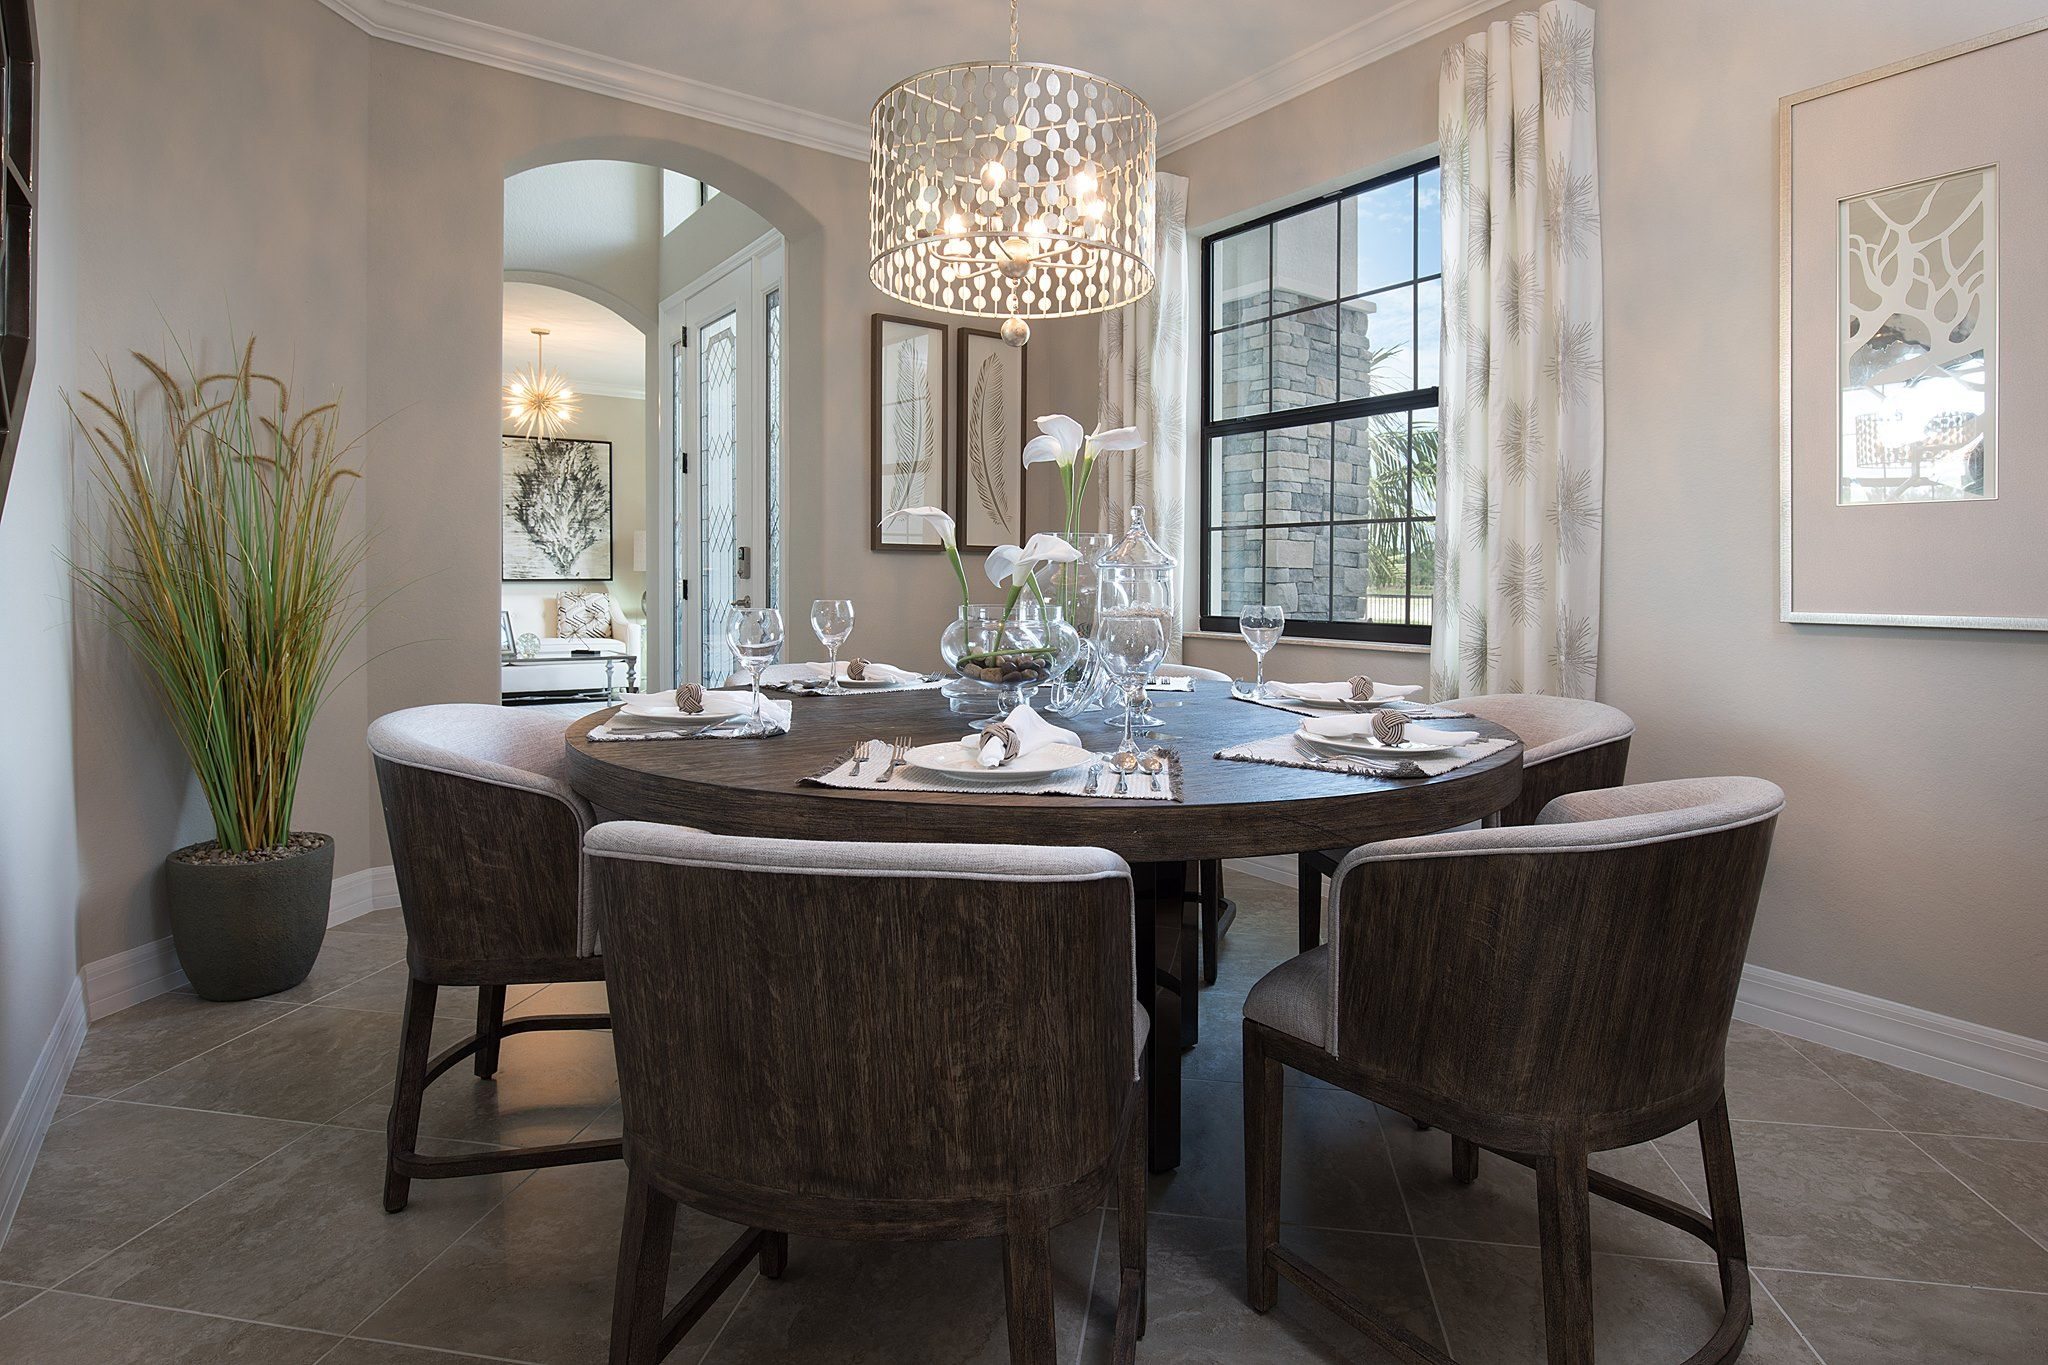 Awesome Dining Rooms From Hulsta: I'm Crazy About Round Dining Tables ~ Awesome!!!